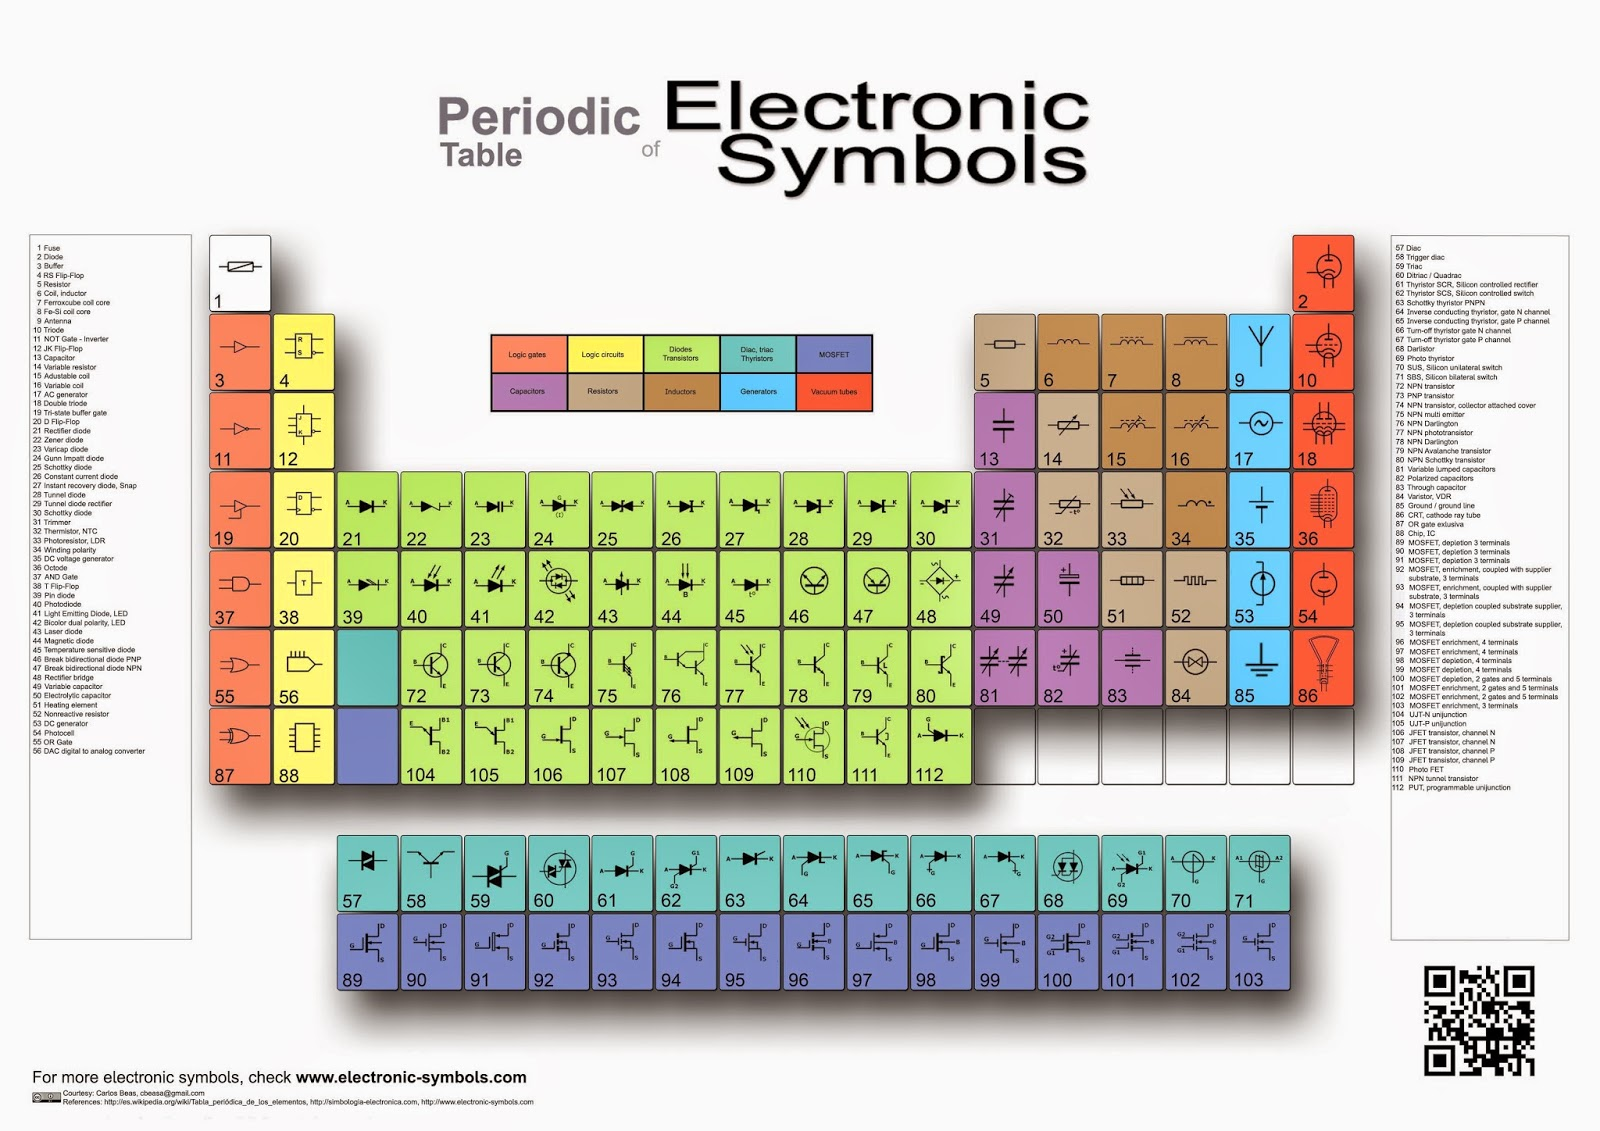 Periodic table of  Electronic Symbols